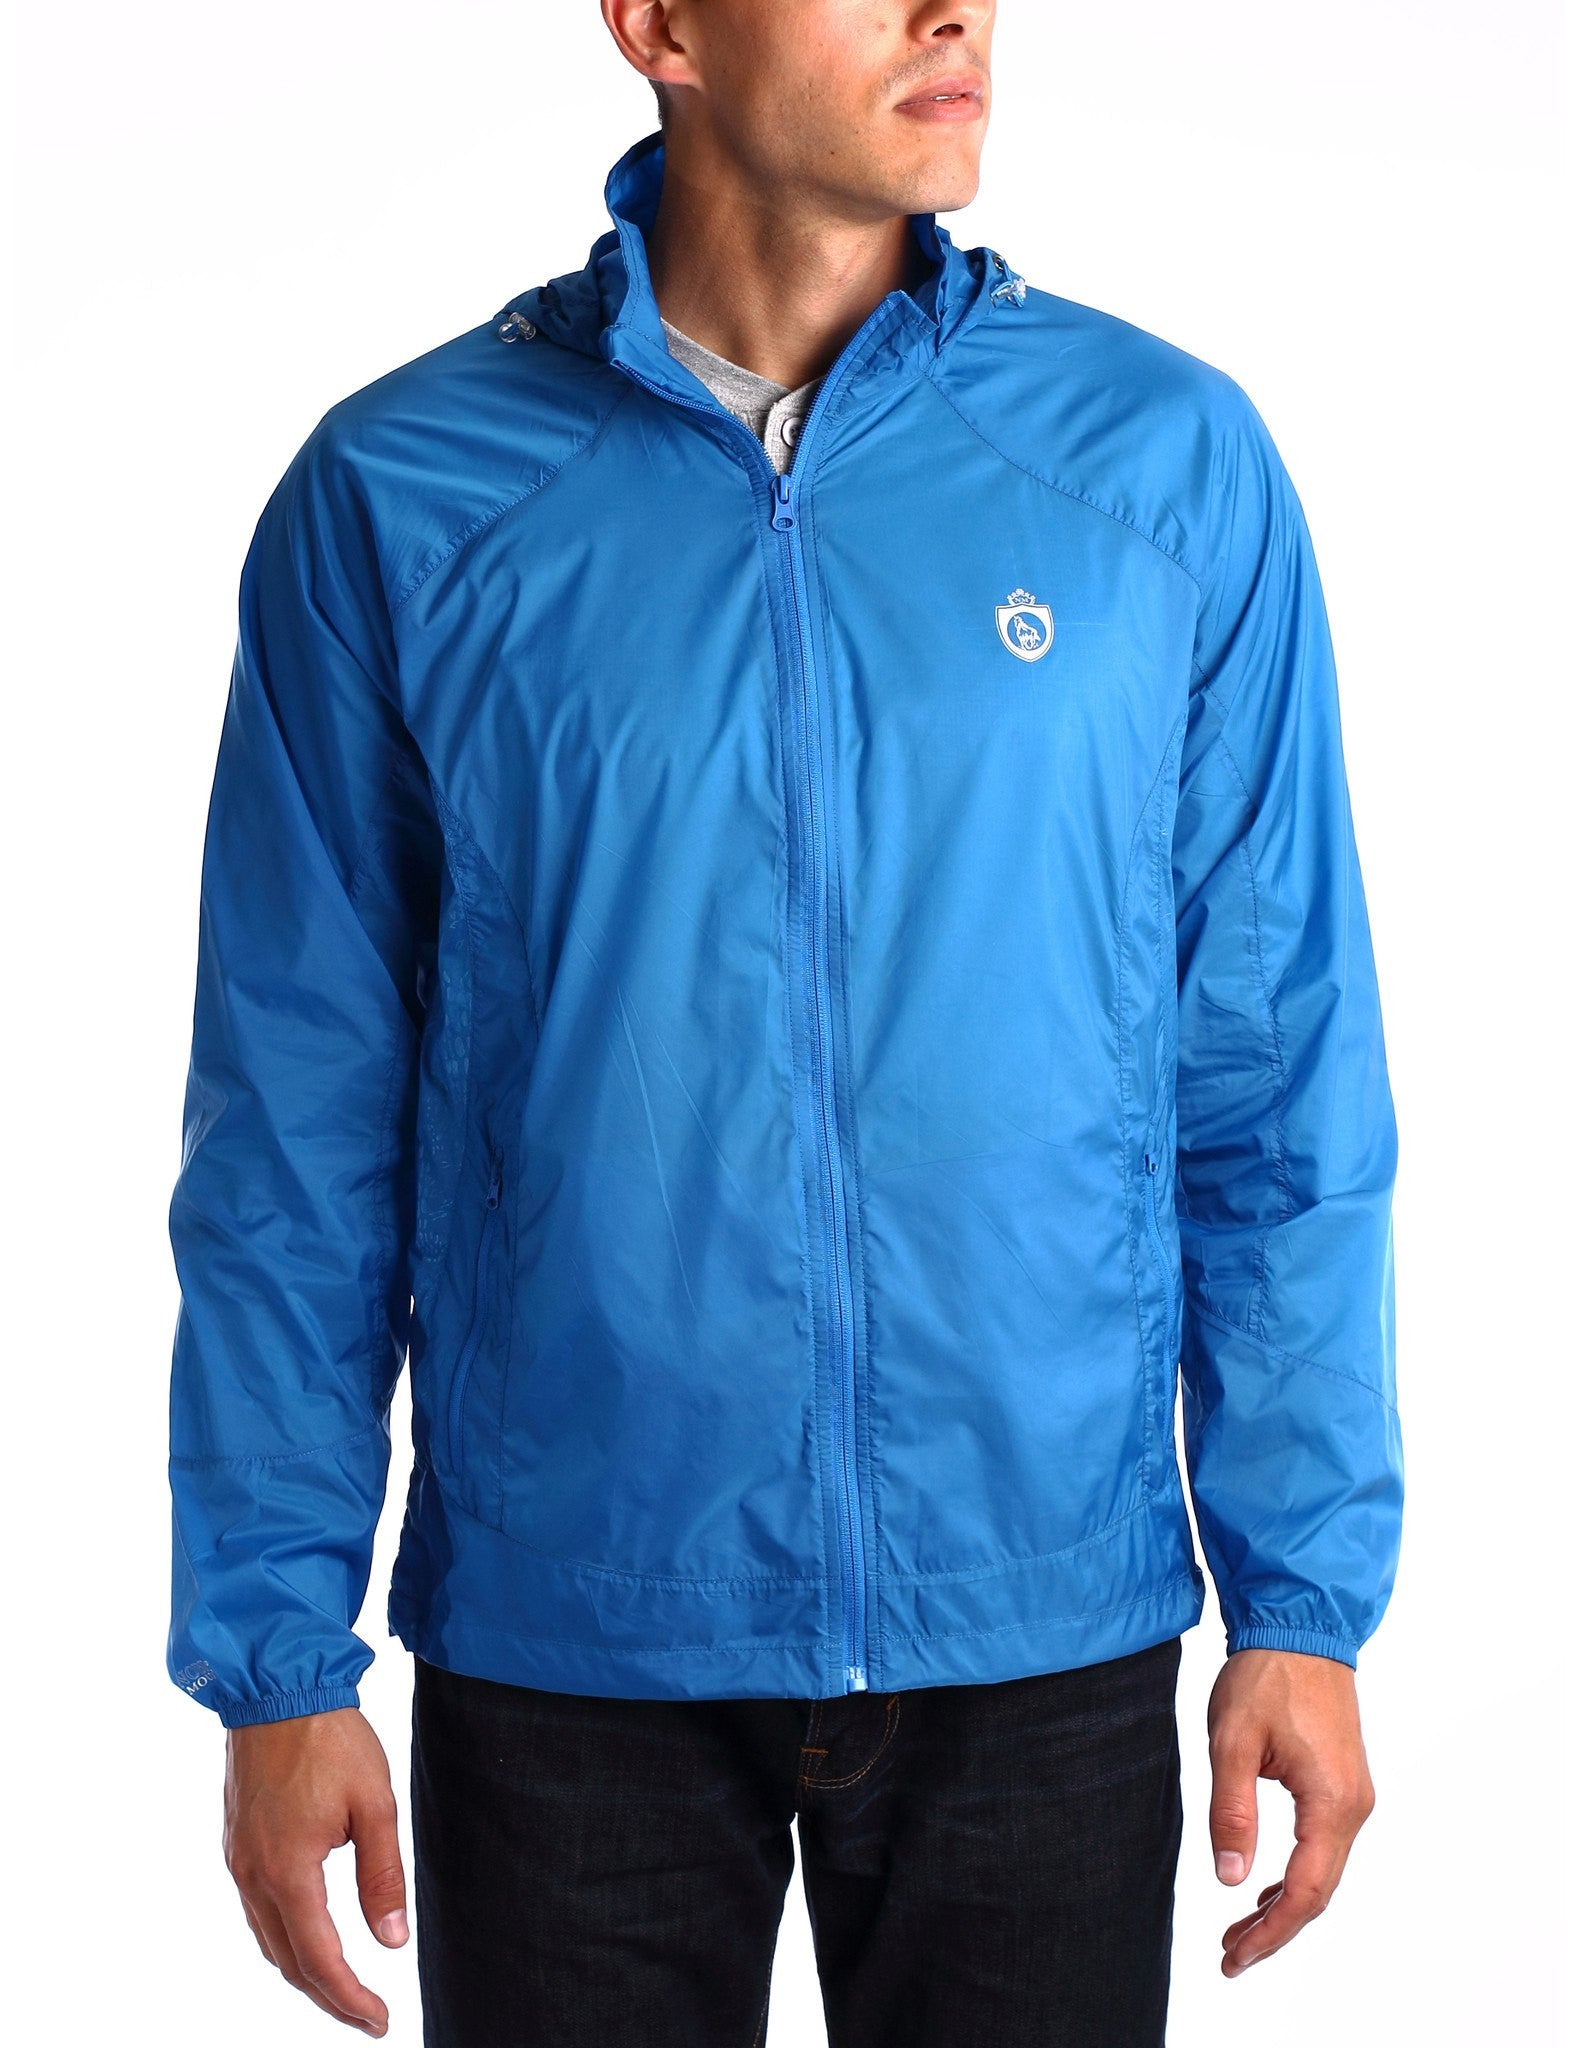 Men's Active Air-weight Windbreaker Packable Jacket